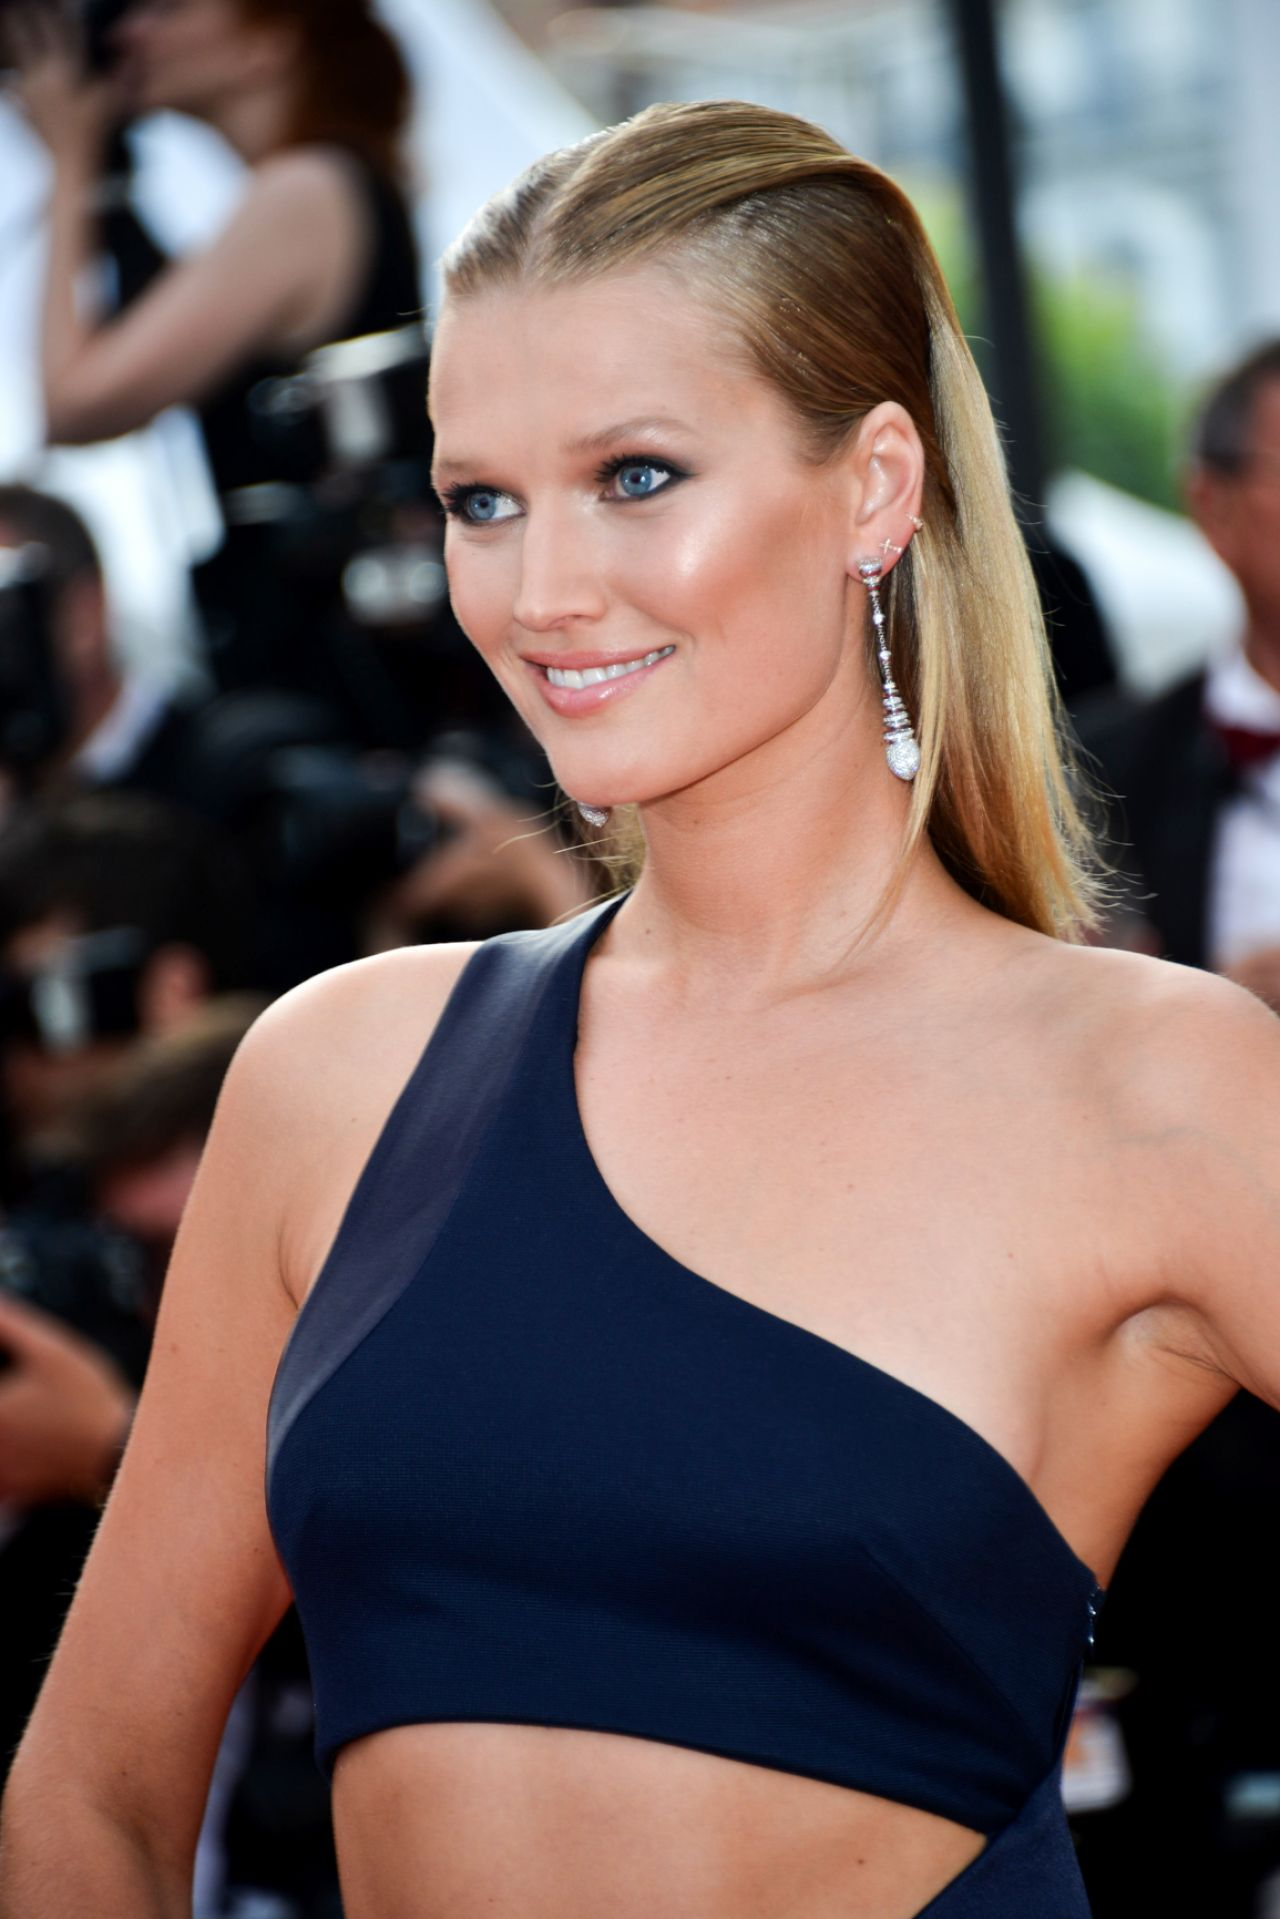 Toni Garrn The Beguiled Premiere At Cannes Film